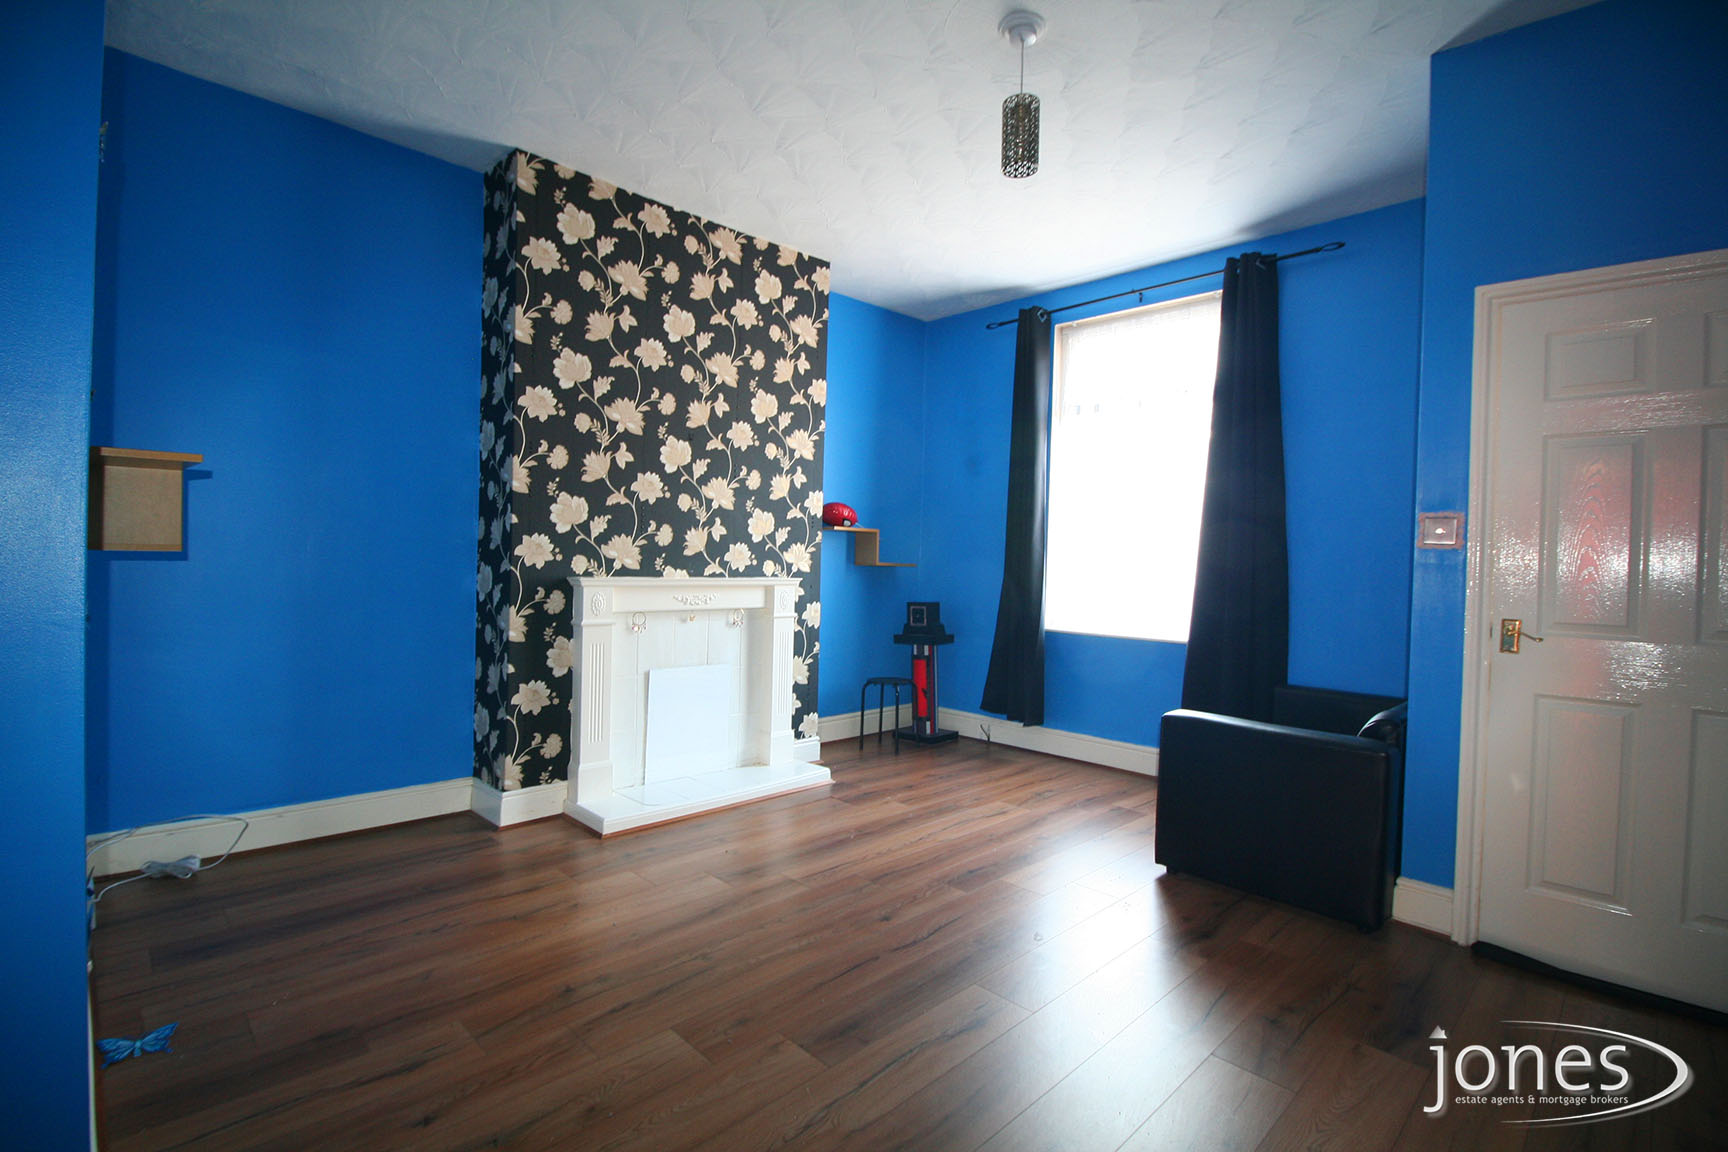 Home for Sale Let - Photo 02 Dent Street, Hartlepool, TS26 8AY